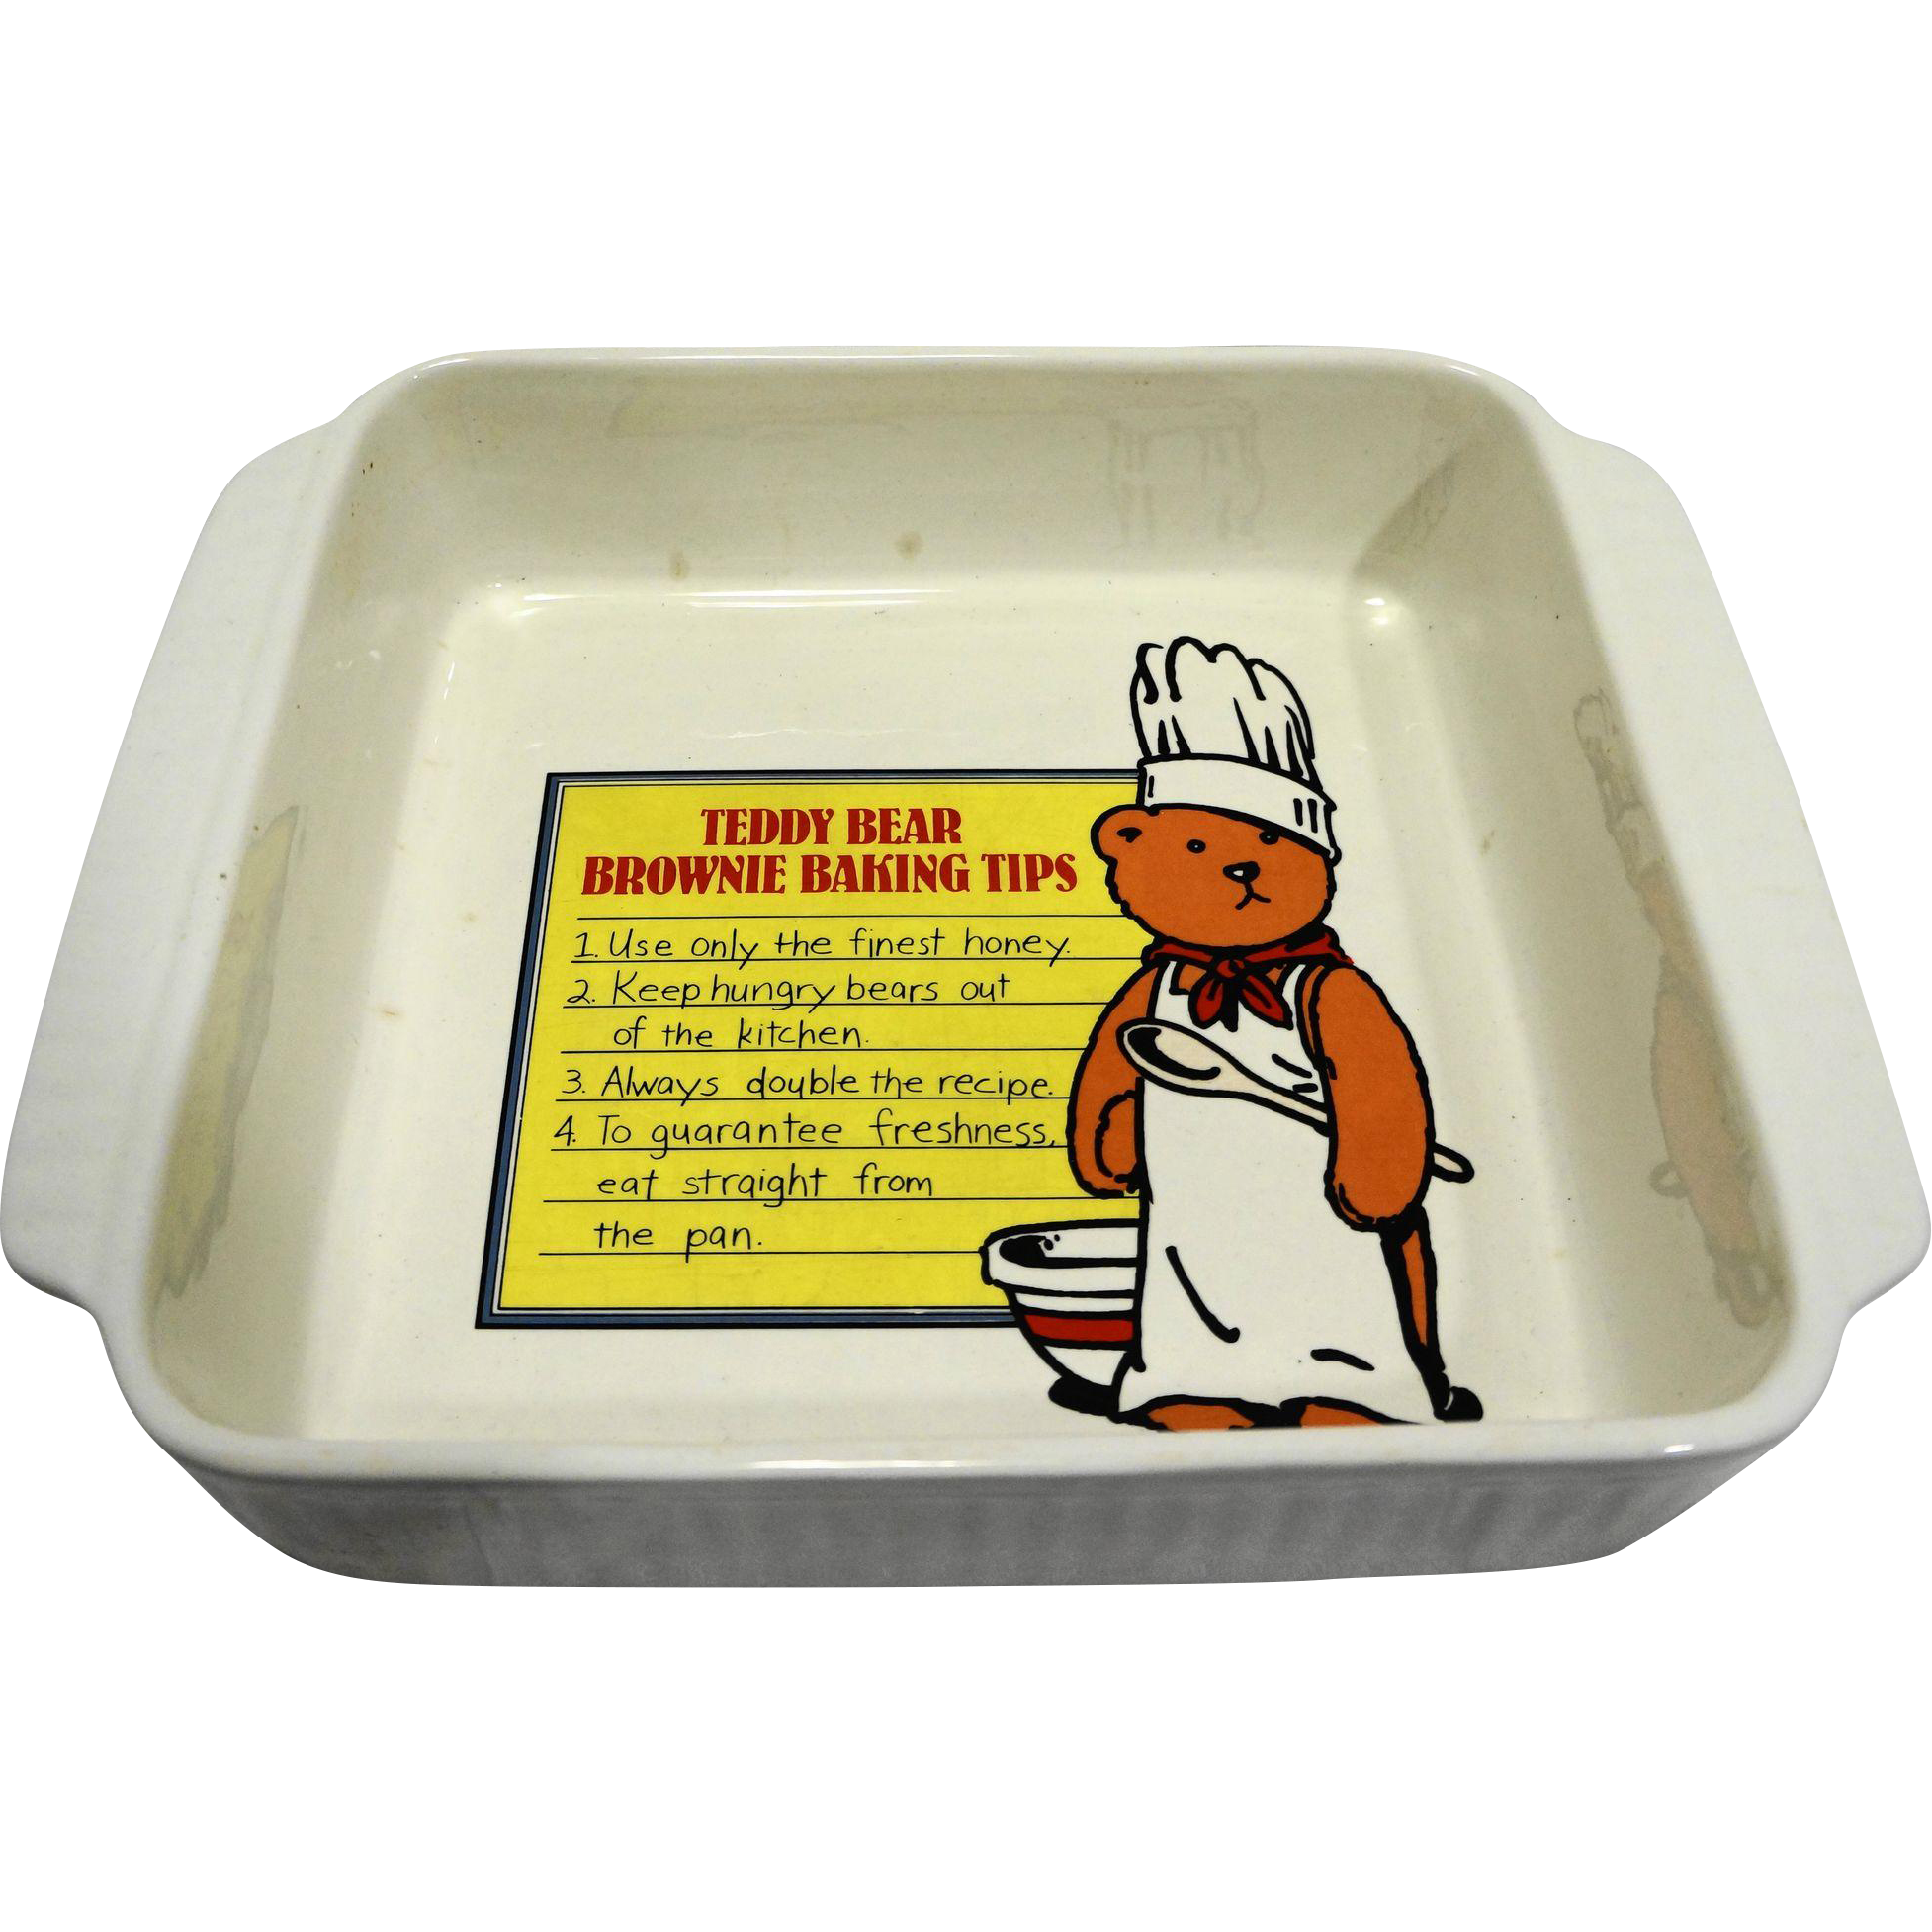 California Pottery 965 White Ribbed Square Baking Pan Teddy Bear Brownie Tips